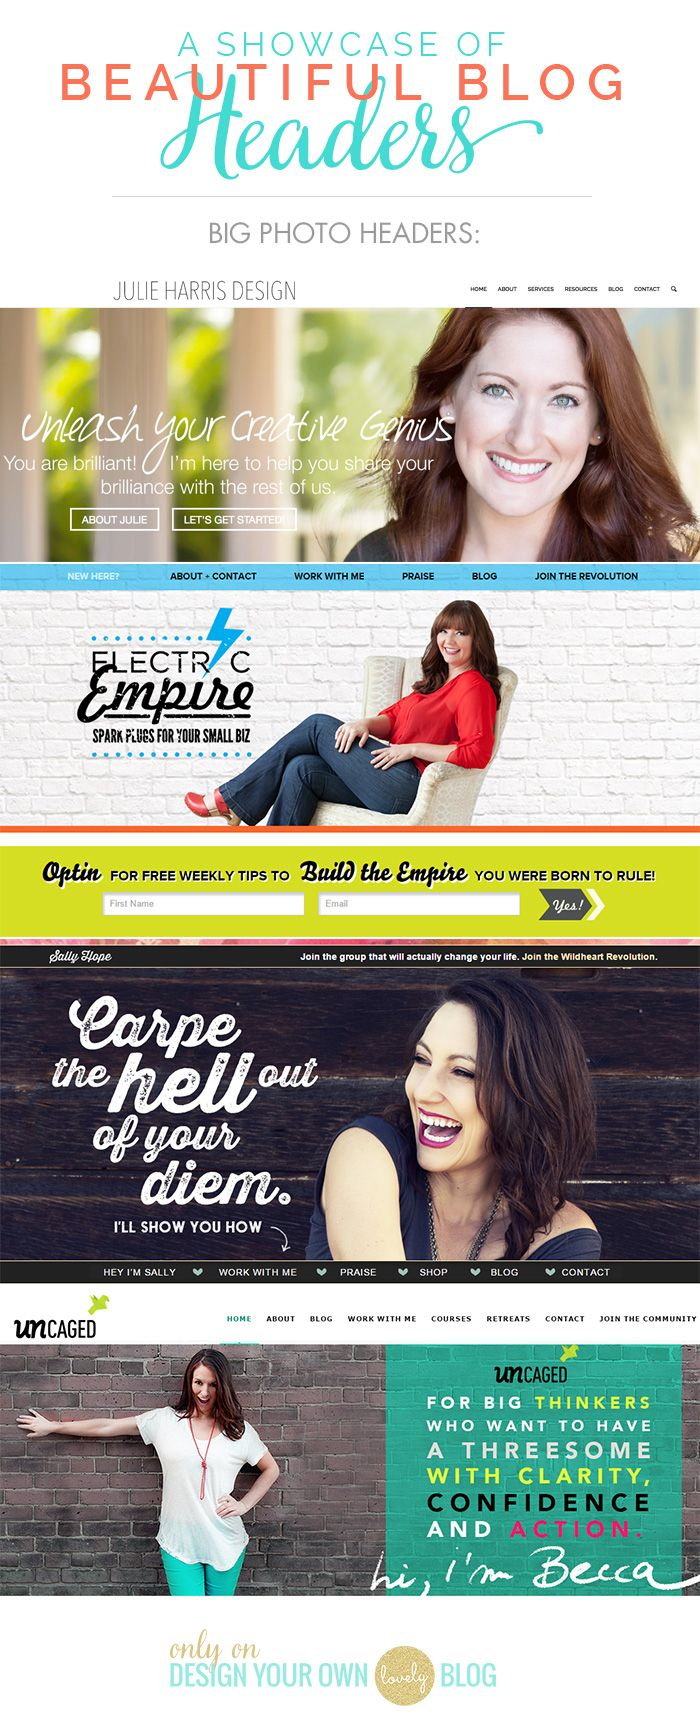 Beautiful blog headers with big photos. See more blog header inspiration at DesignYourOwnBlog.com.